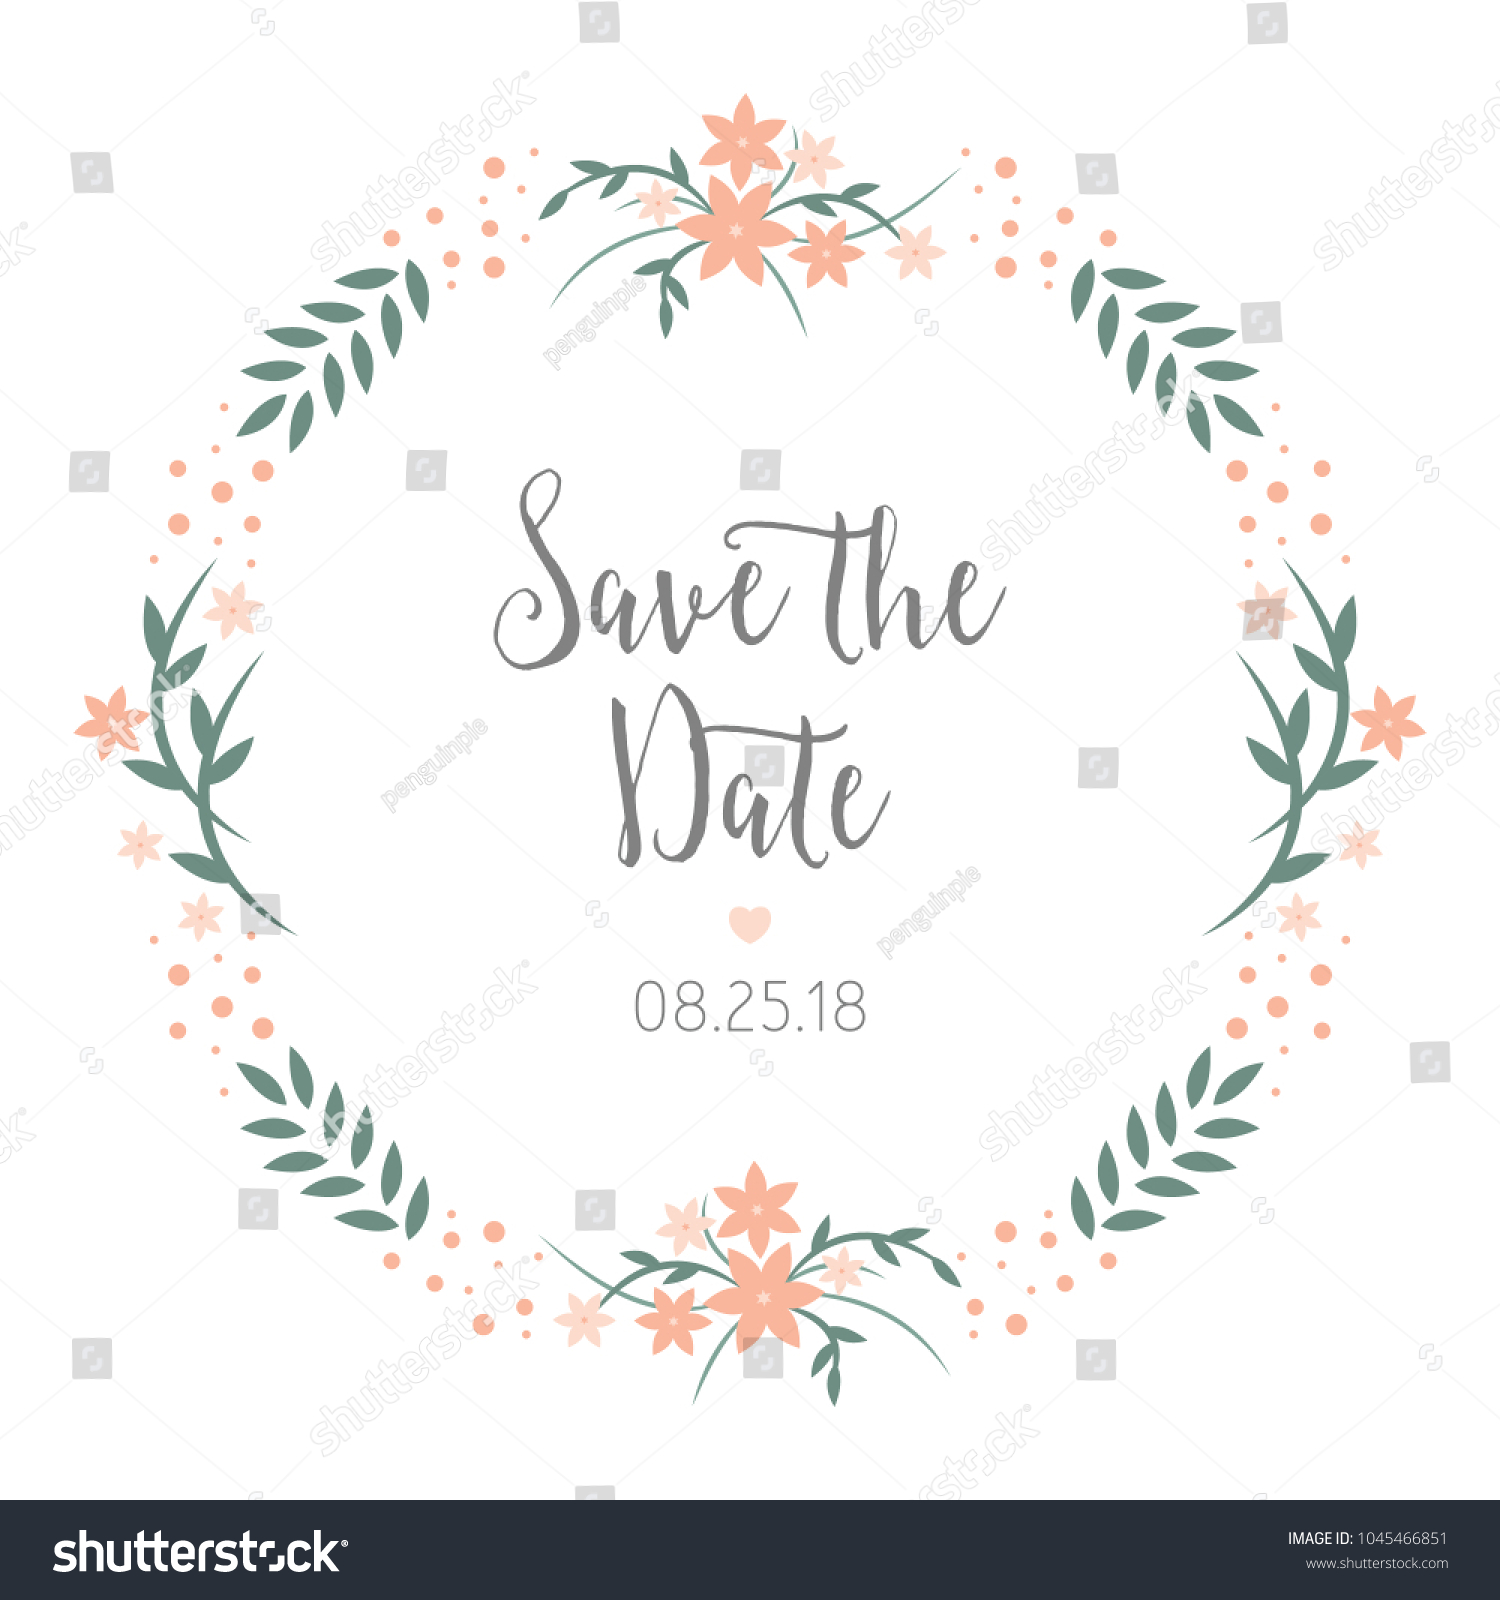 Save Date Wedding Reminder Card Design Stock Vector 1045466851 ...